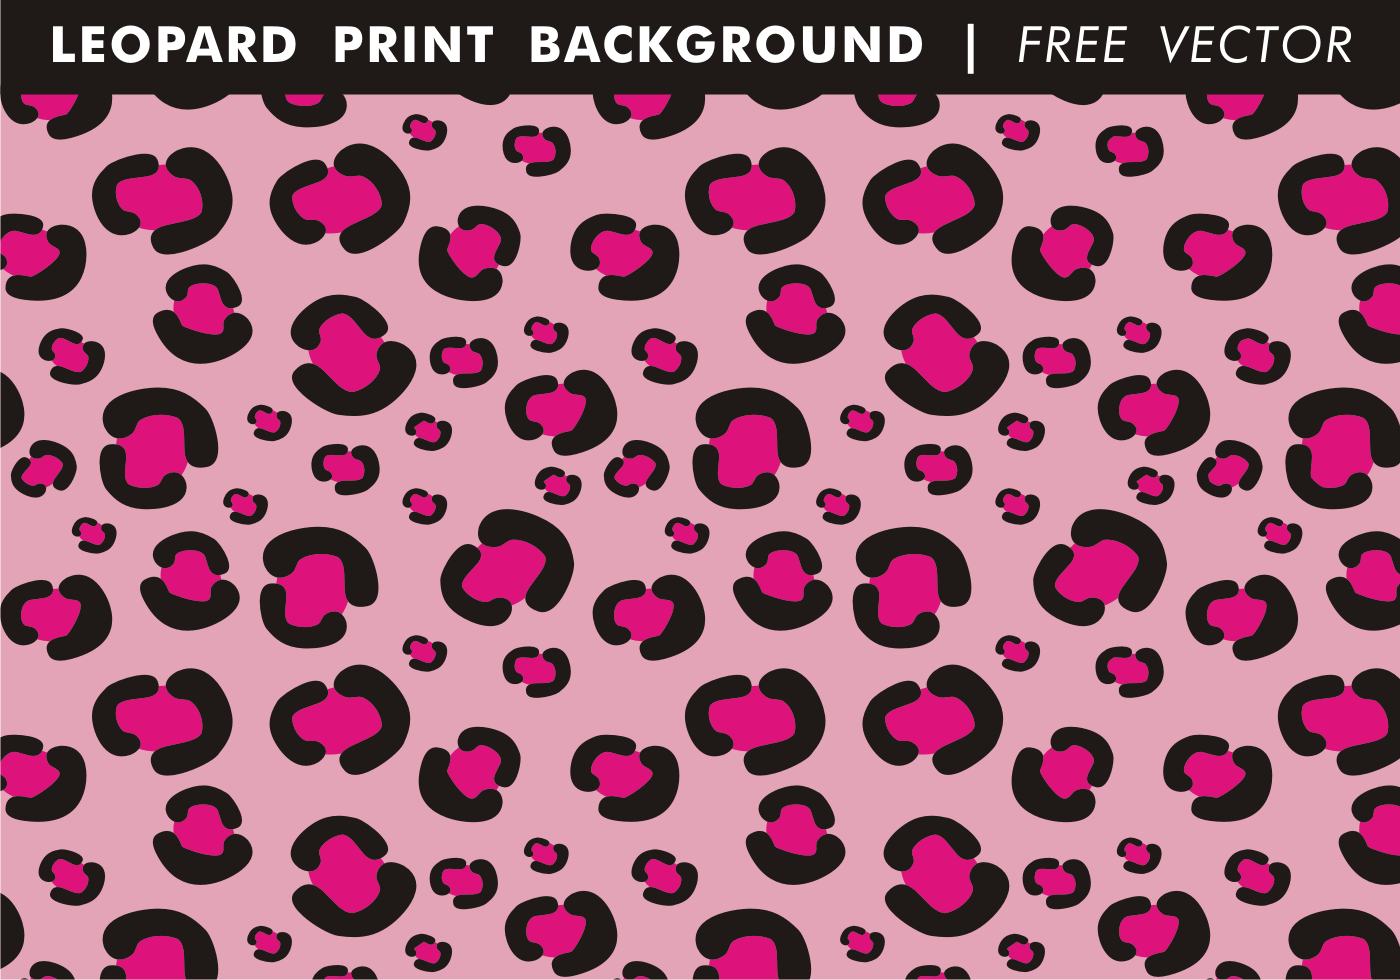 Girly Leopard Print Background Free Vector Download